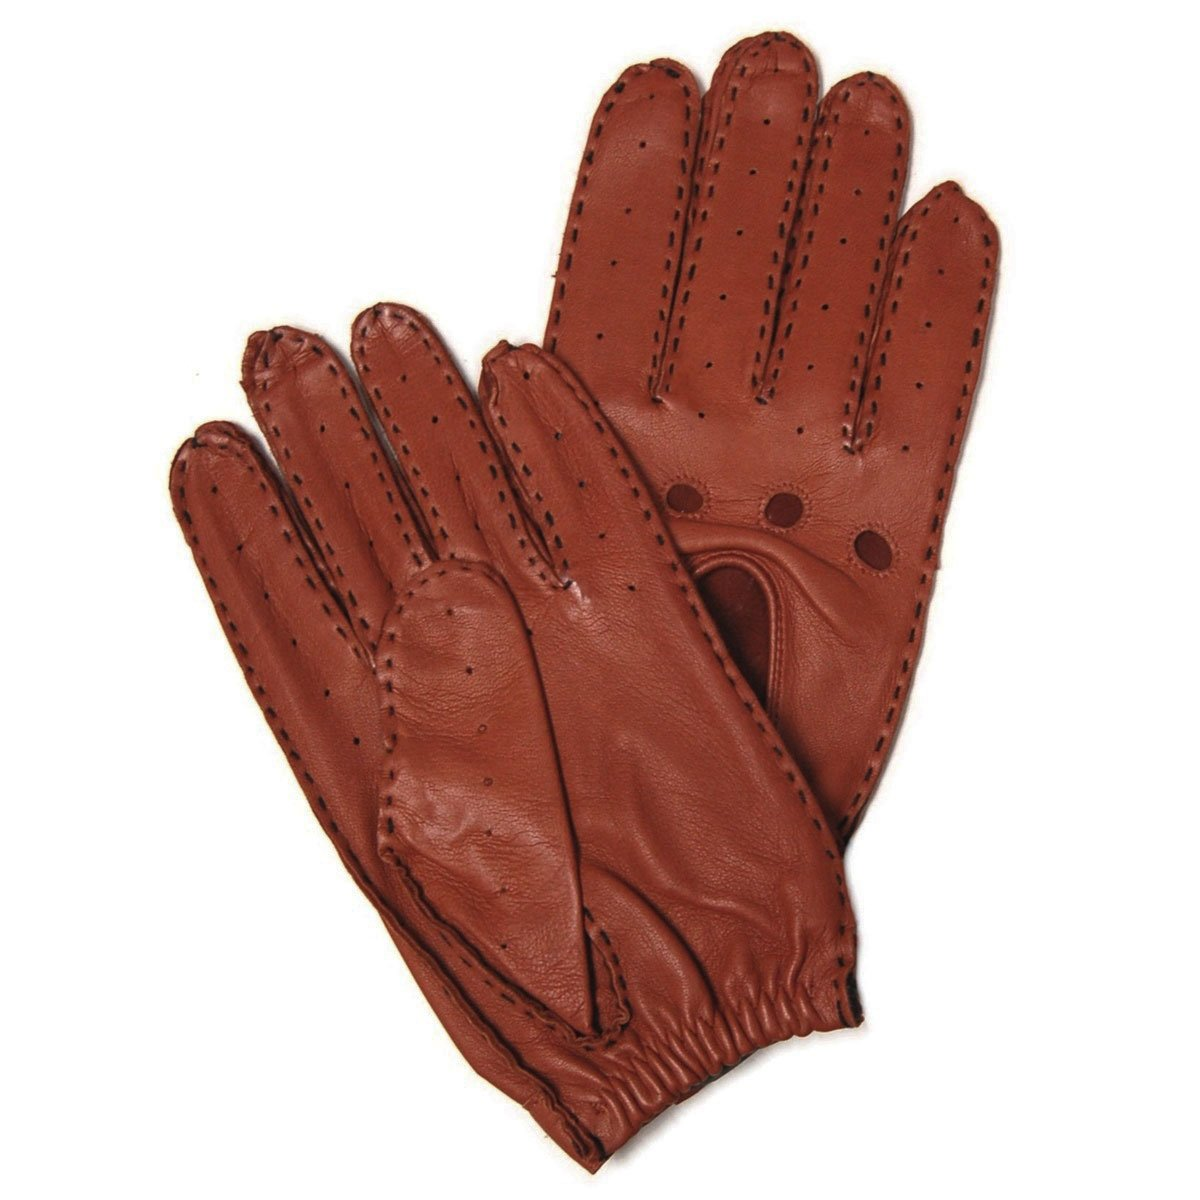 Hilts-Willard Men's Leather Driving Gloves - L - Brown